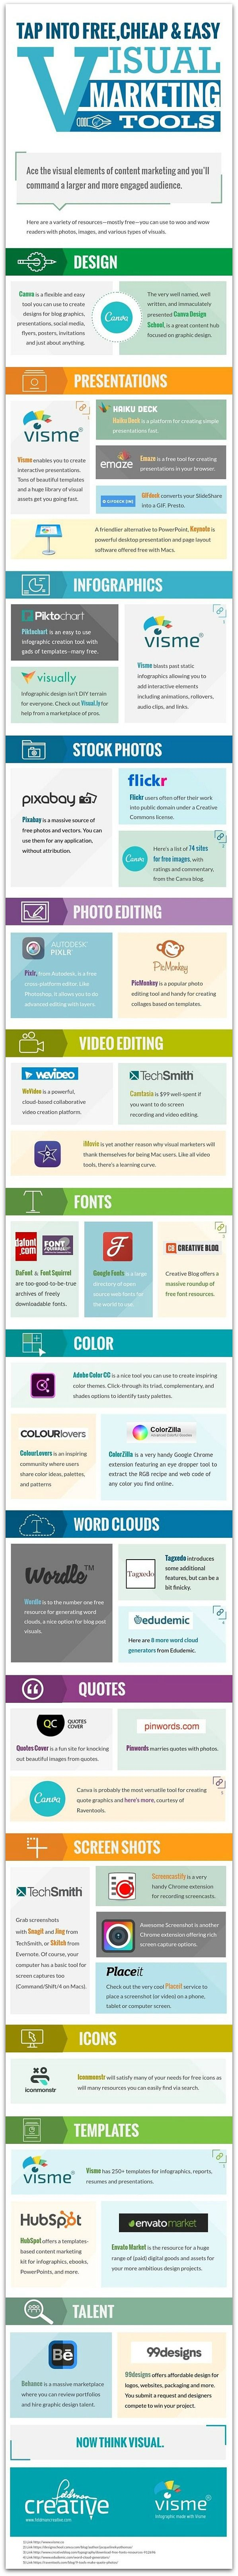 Need a better video editor or screen-casting software? How about a new source for fonts or quotes? No matter what your visual content needs are, this guide has you covered.